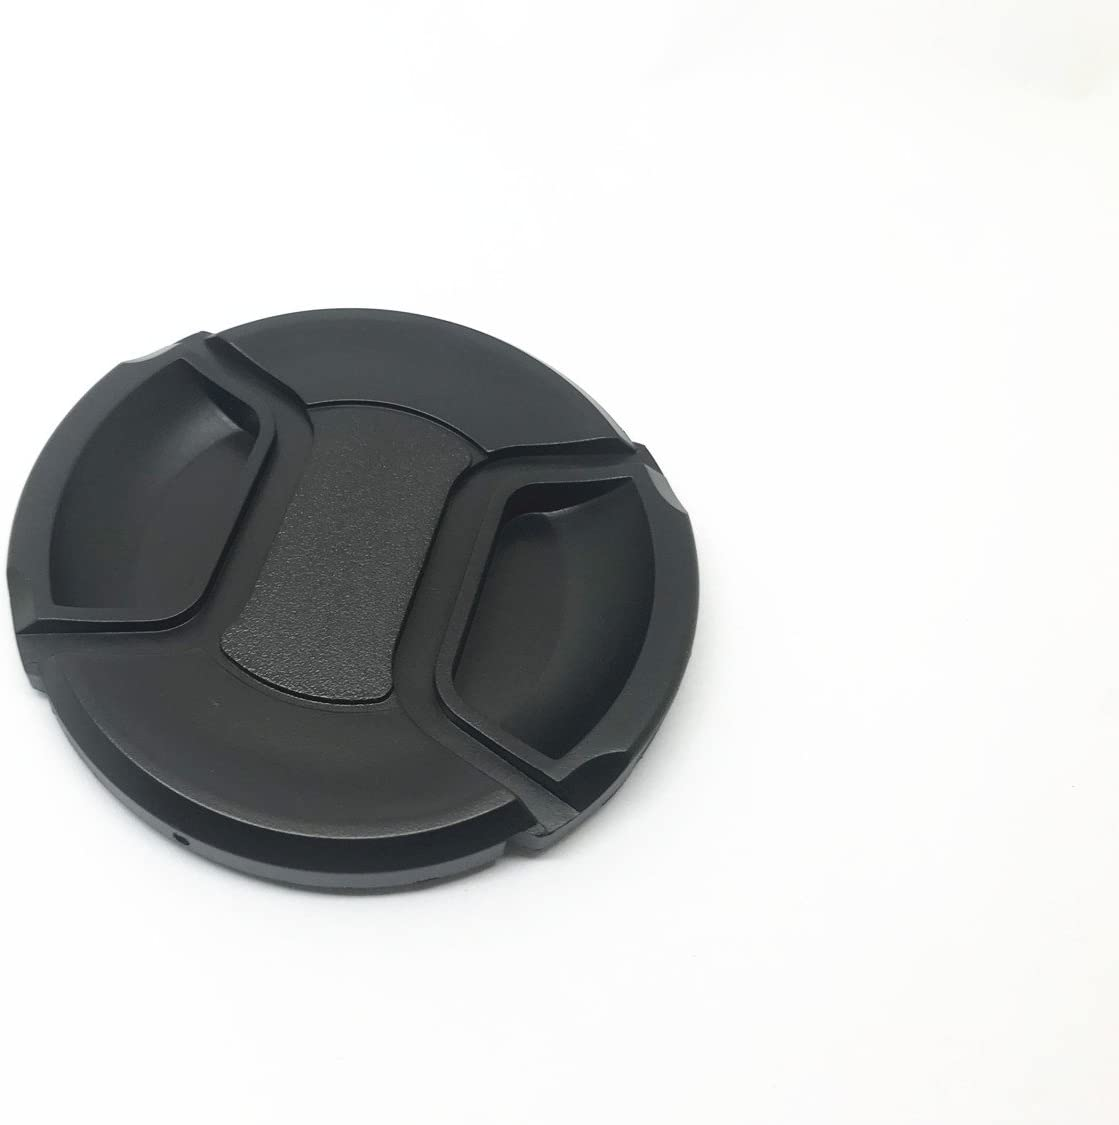 Center Pinch Snap-on Front Cap 49mm 3 Pcs Center Pinch Lens Cap and Cap Keeper Leash for Canon Nikon Sony DSLR Camera